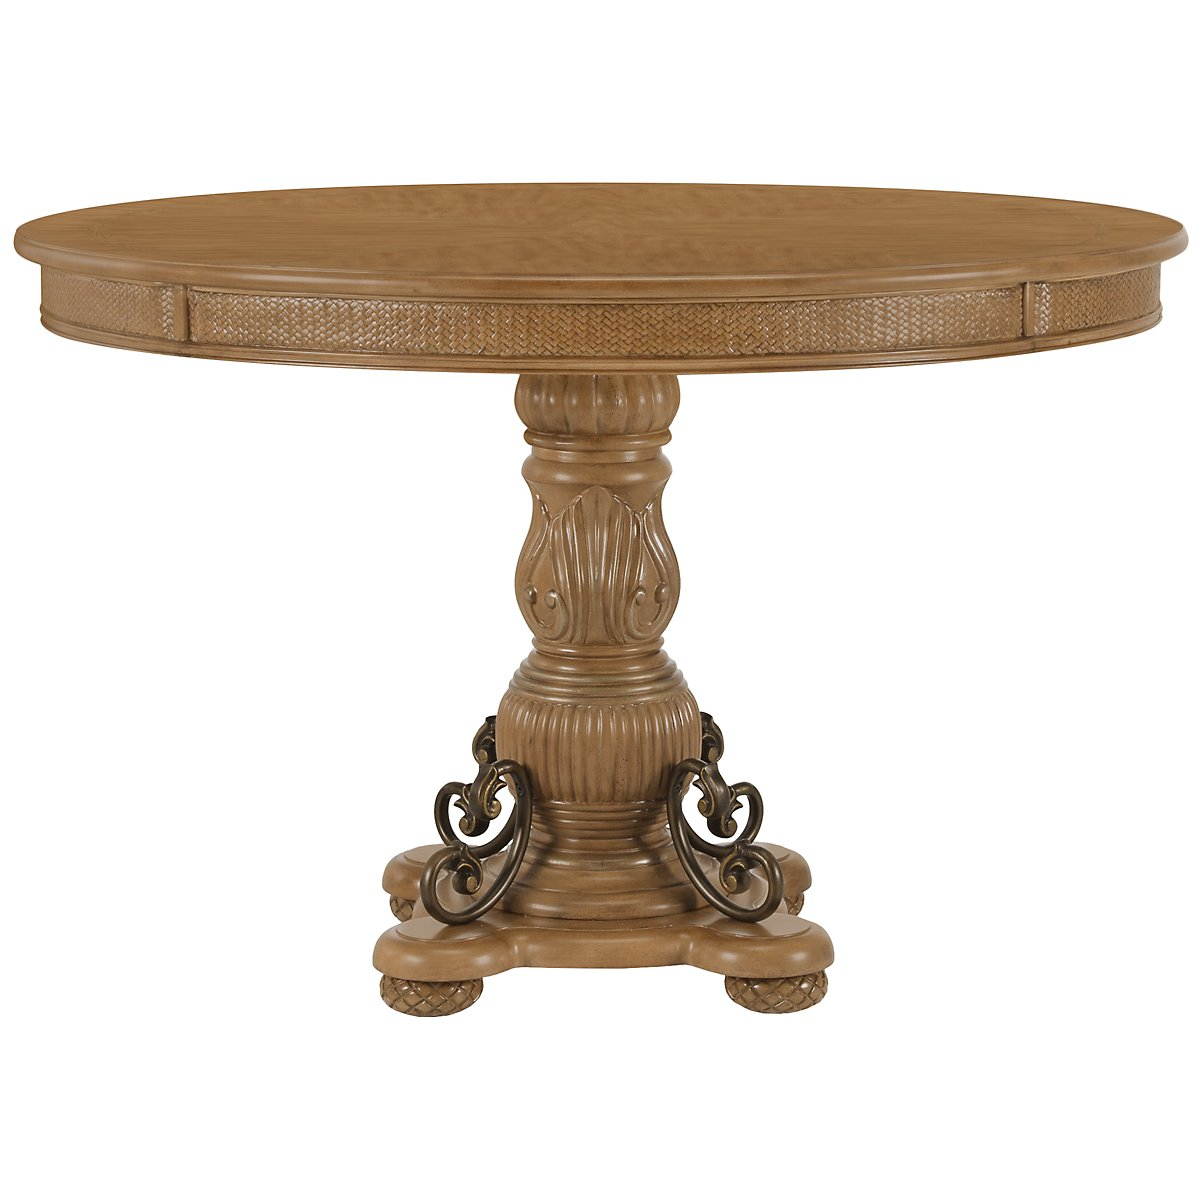 Tradewinds Light Tone Round High/Low Table